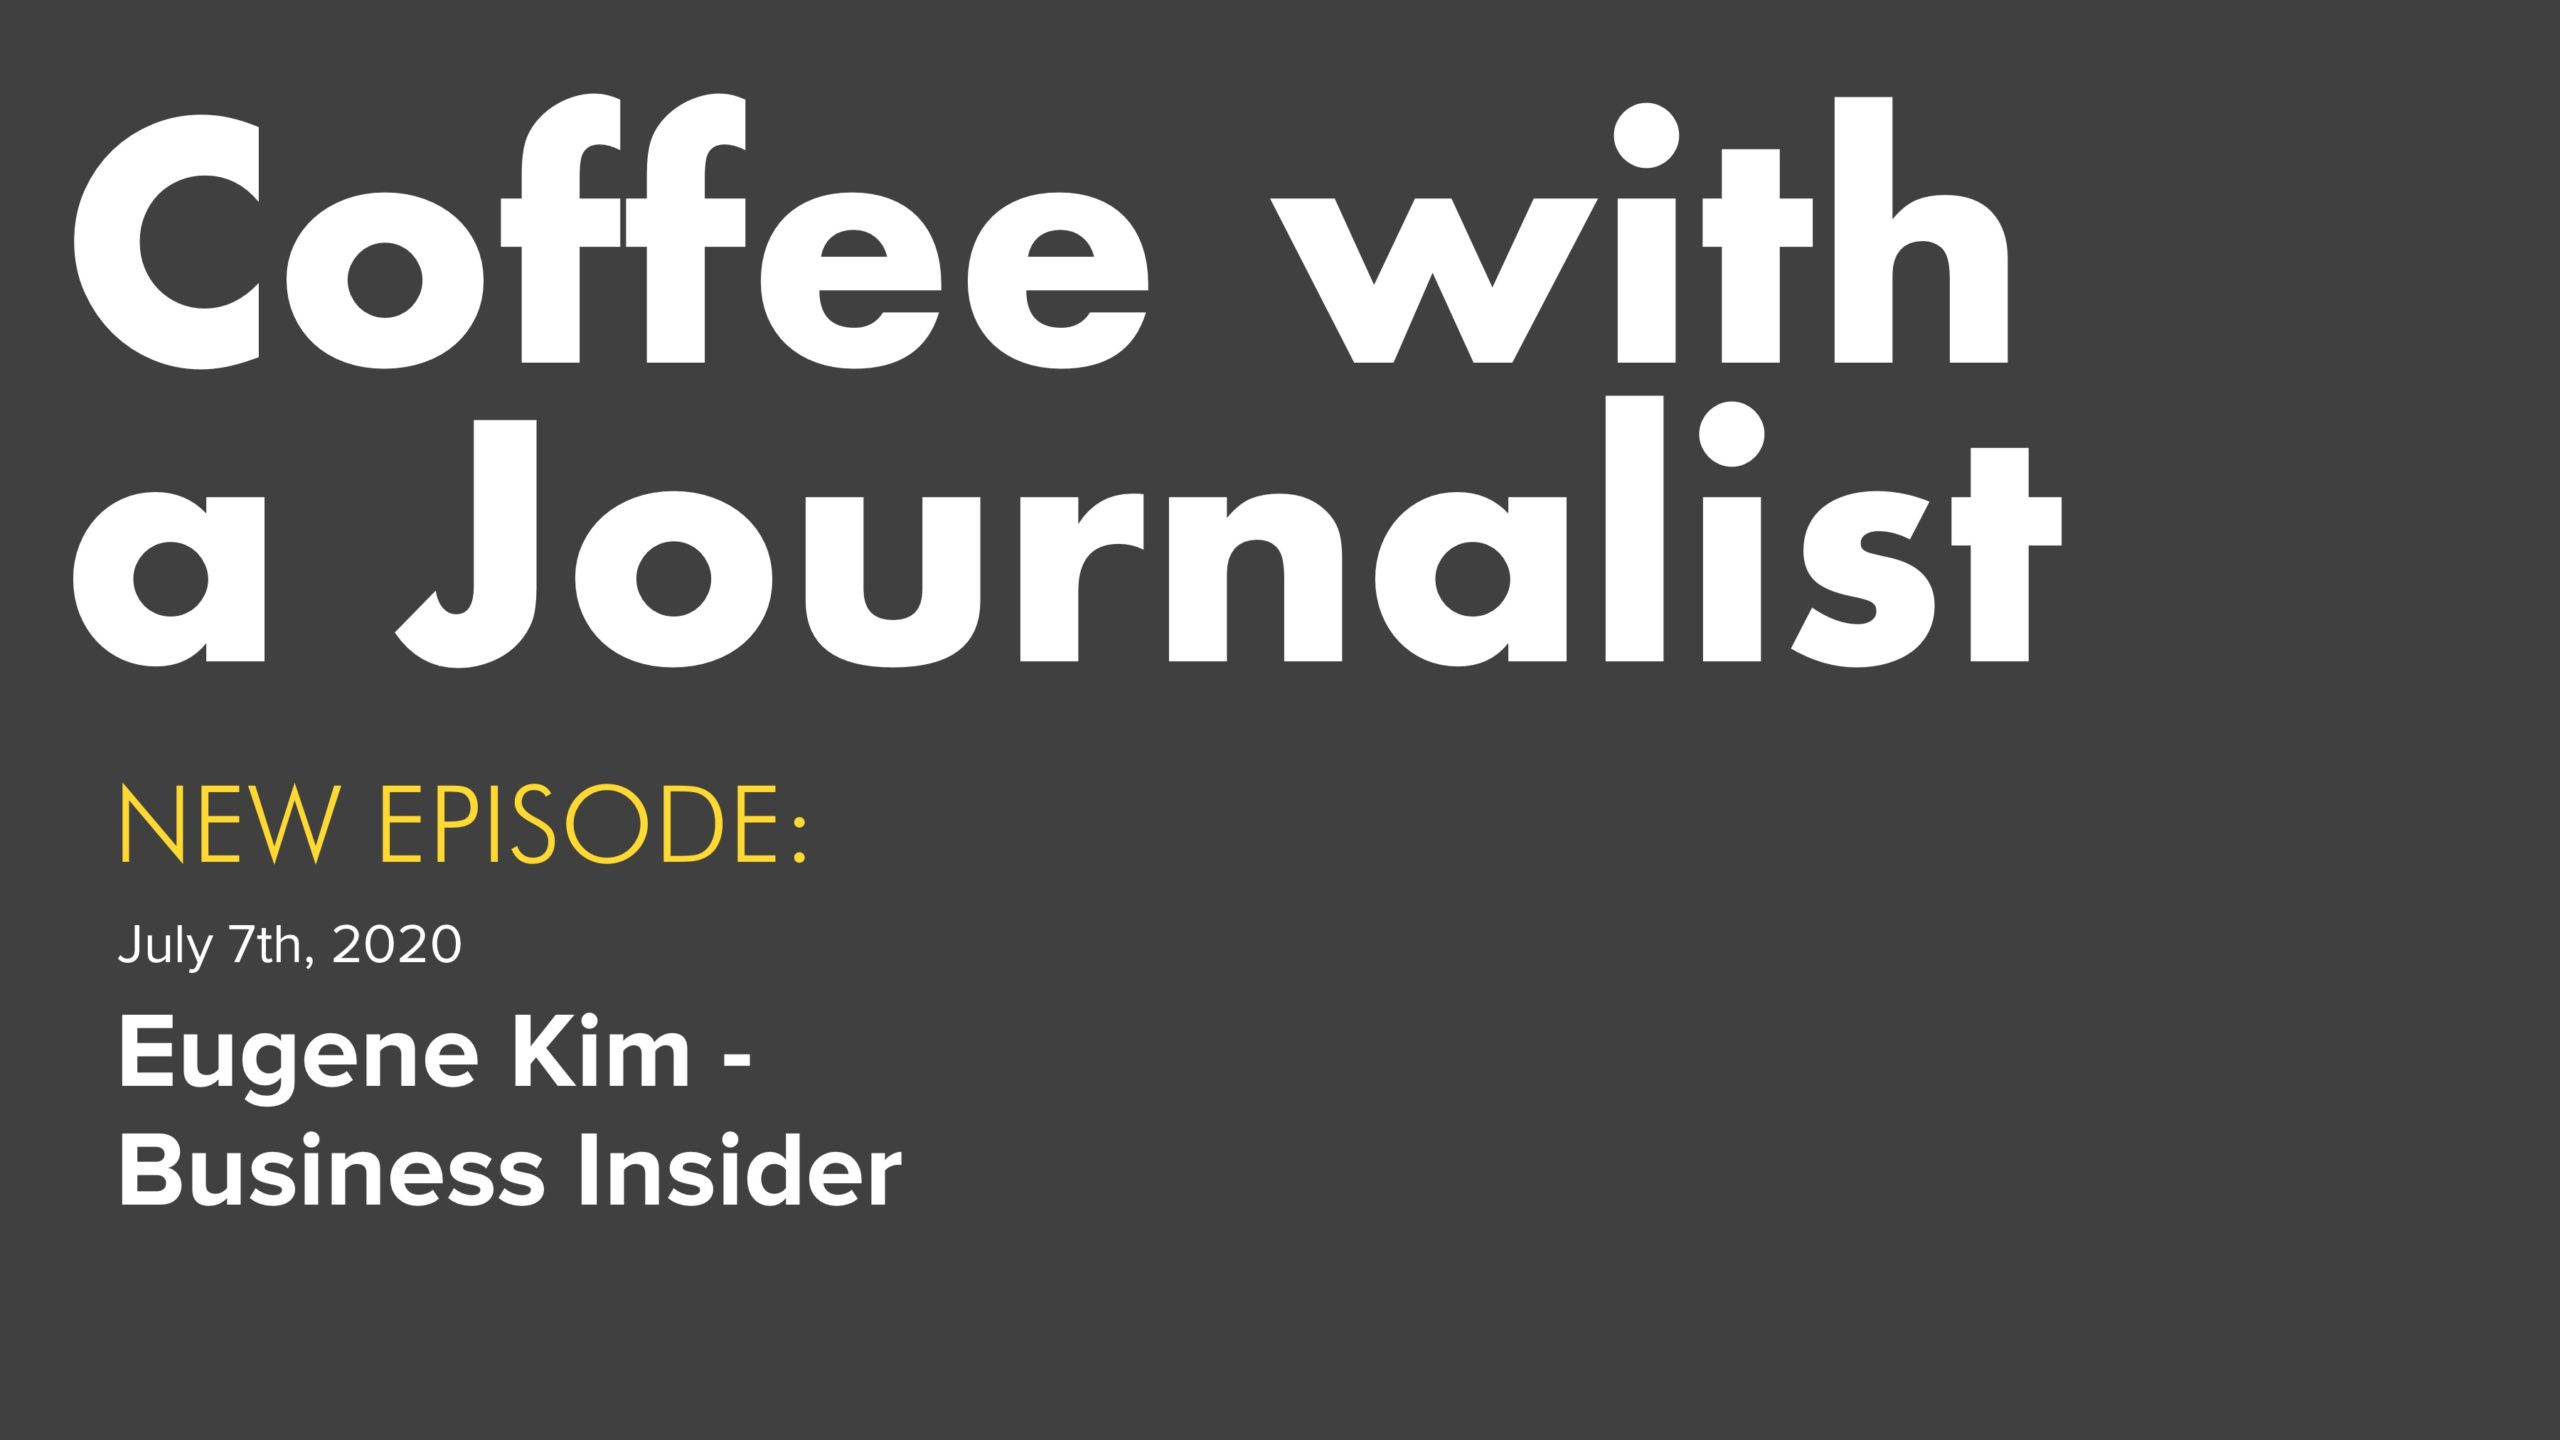 Coffee With A Journalist - Eugene Kim, Business Insider